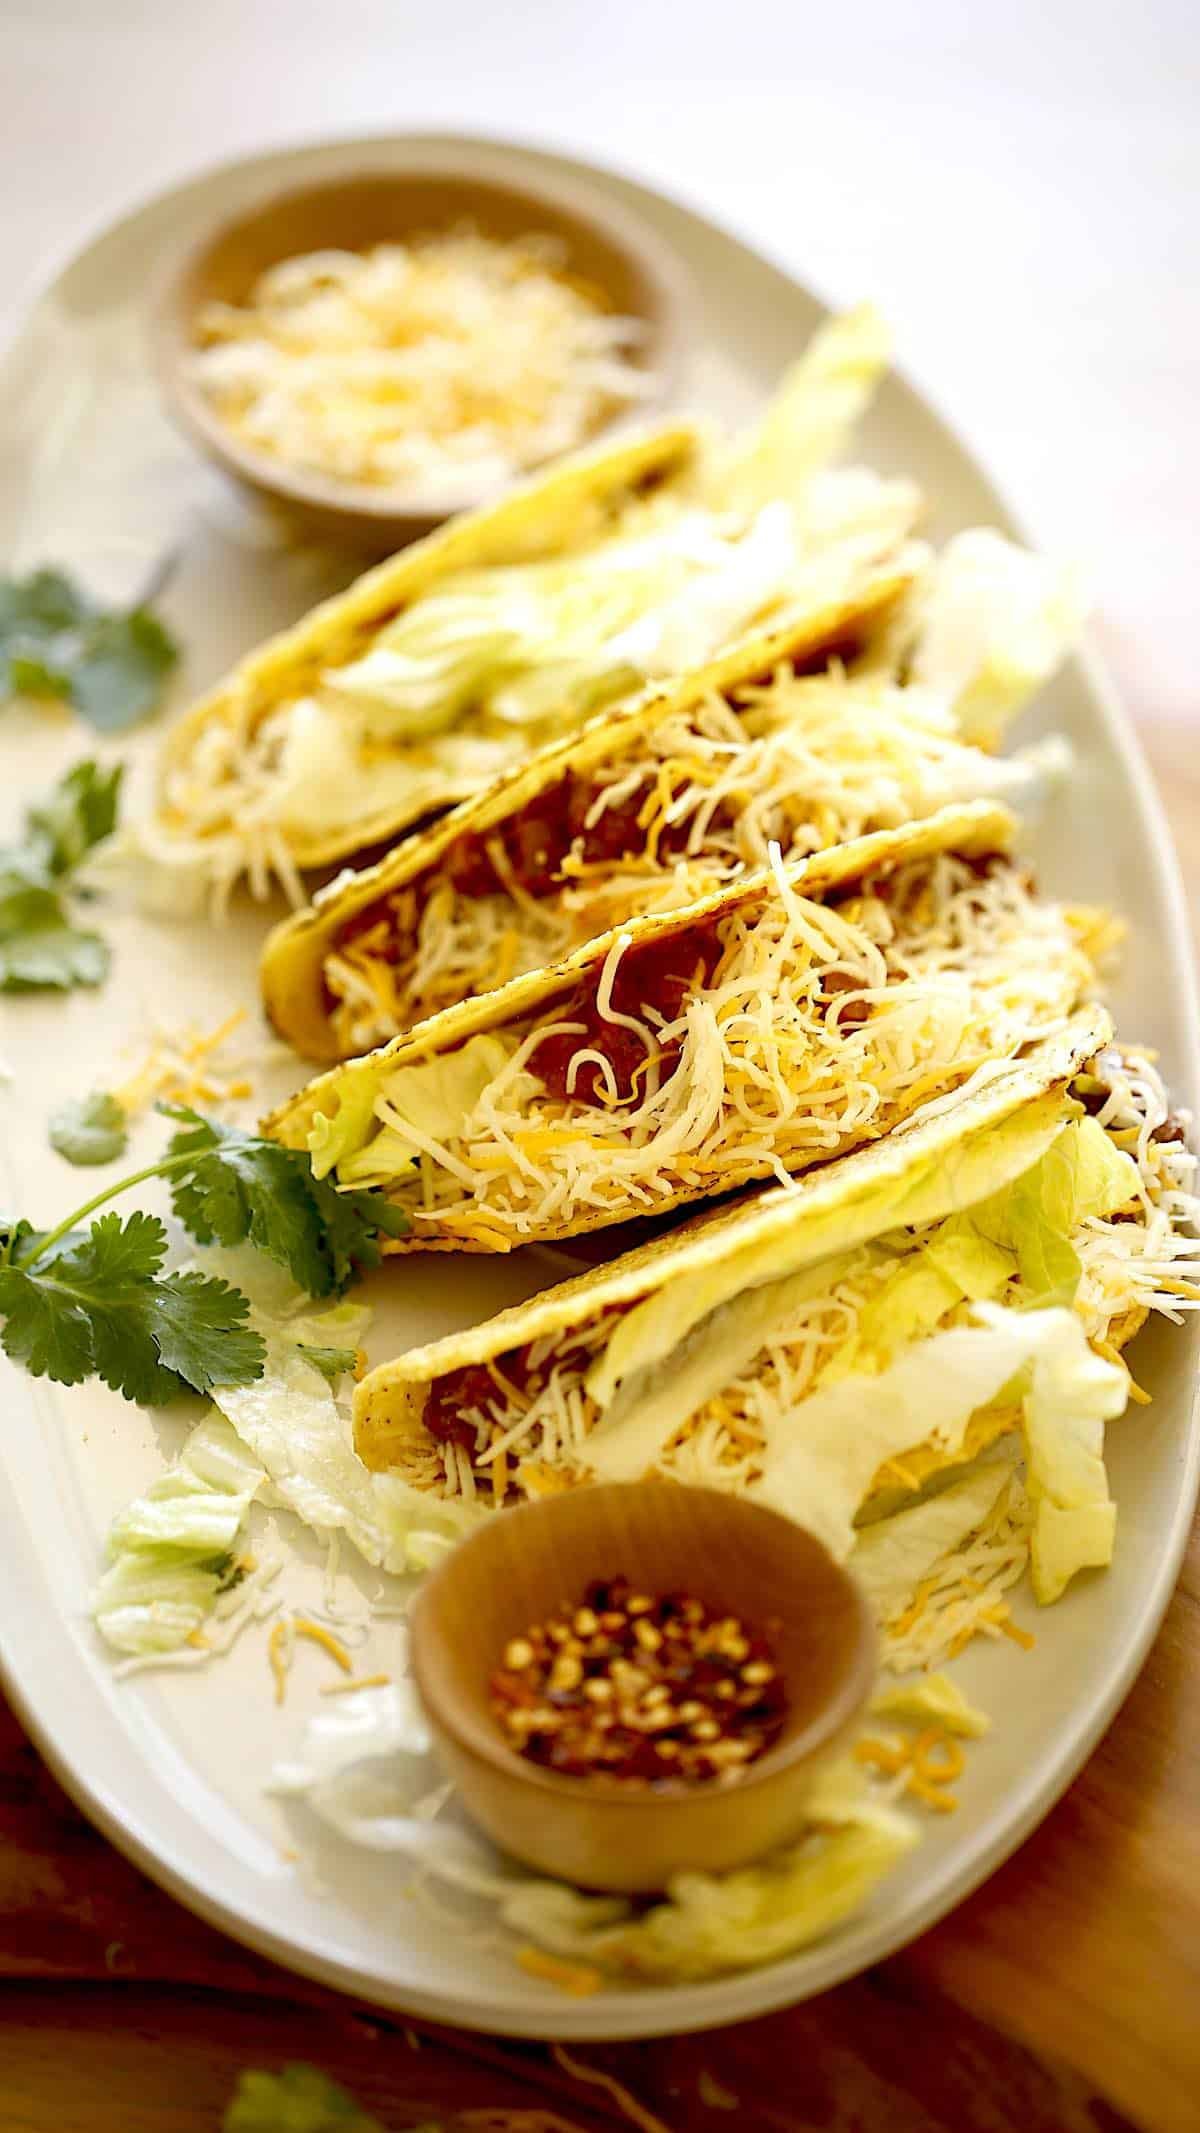 A platter of slow cooker beef tacos yopped with cheese and lettuce